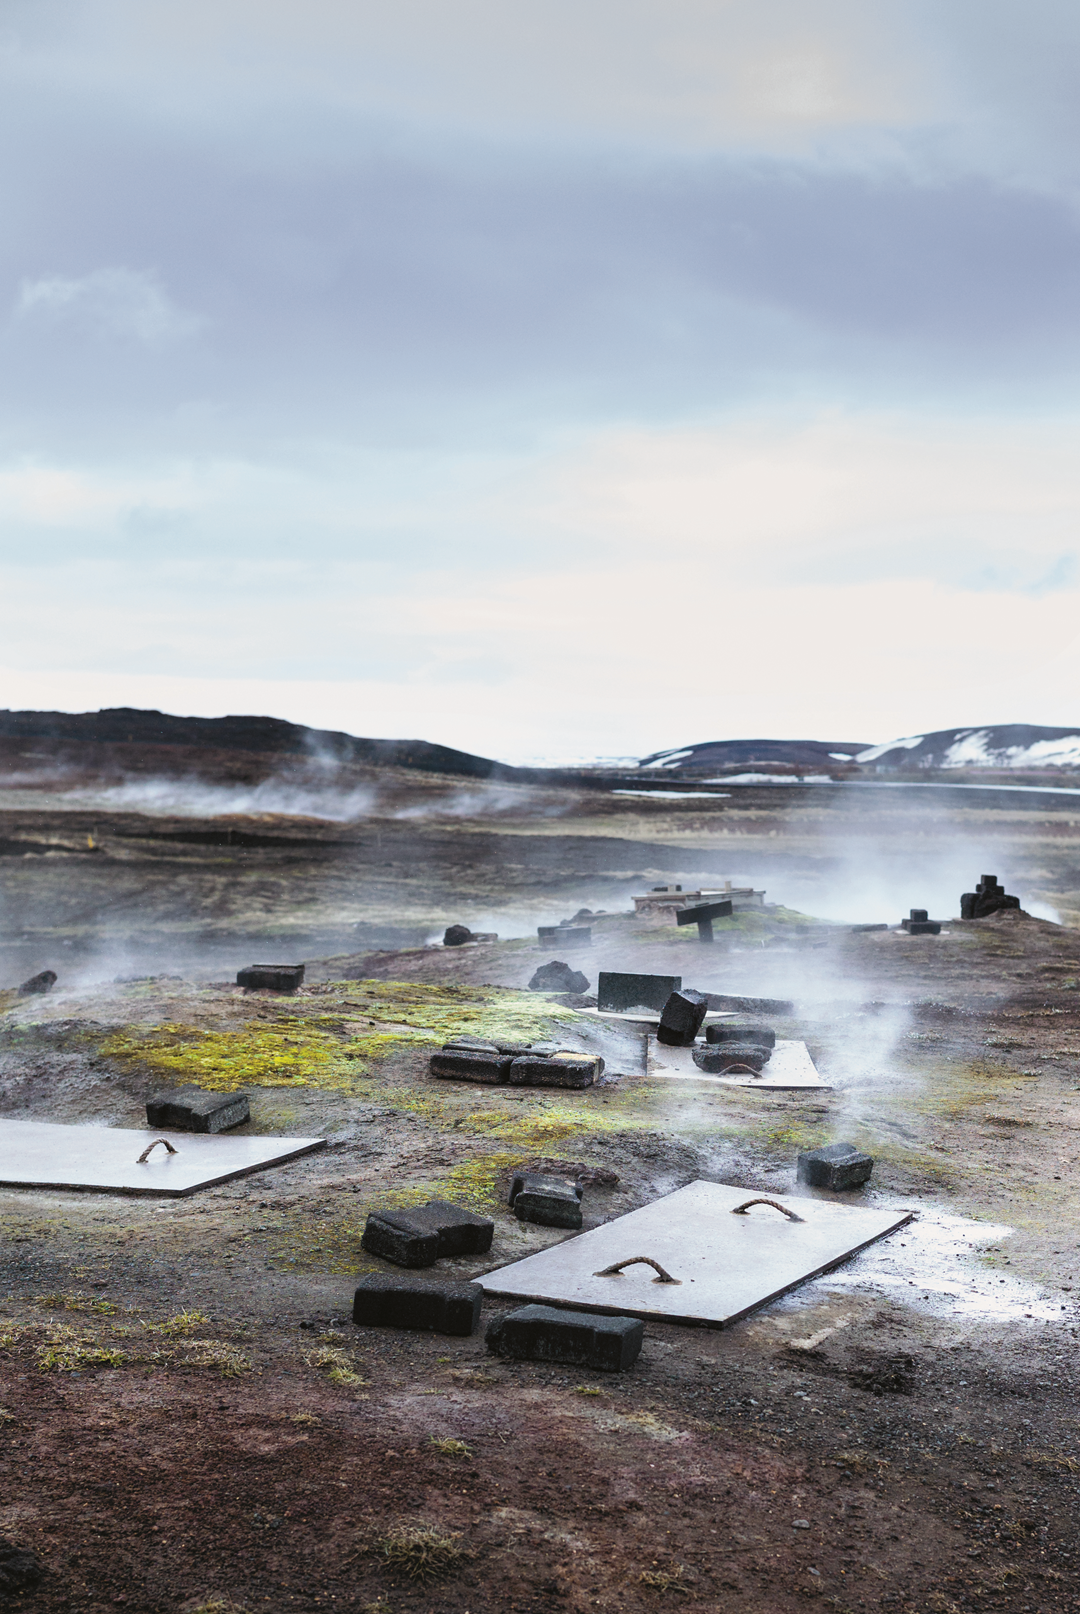 Thermally active area, south of Lake Mývatn, Iceland, May 2013; the site is considered a communal area and each family in the neighbouring village has their own hole in the ground in which they bake Icelandic Rye Bread. Photography by Magnus Nilsson